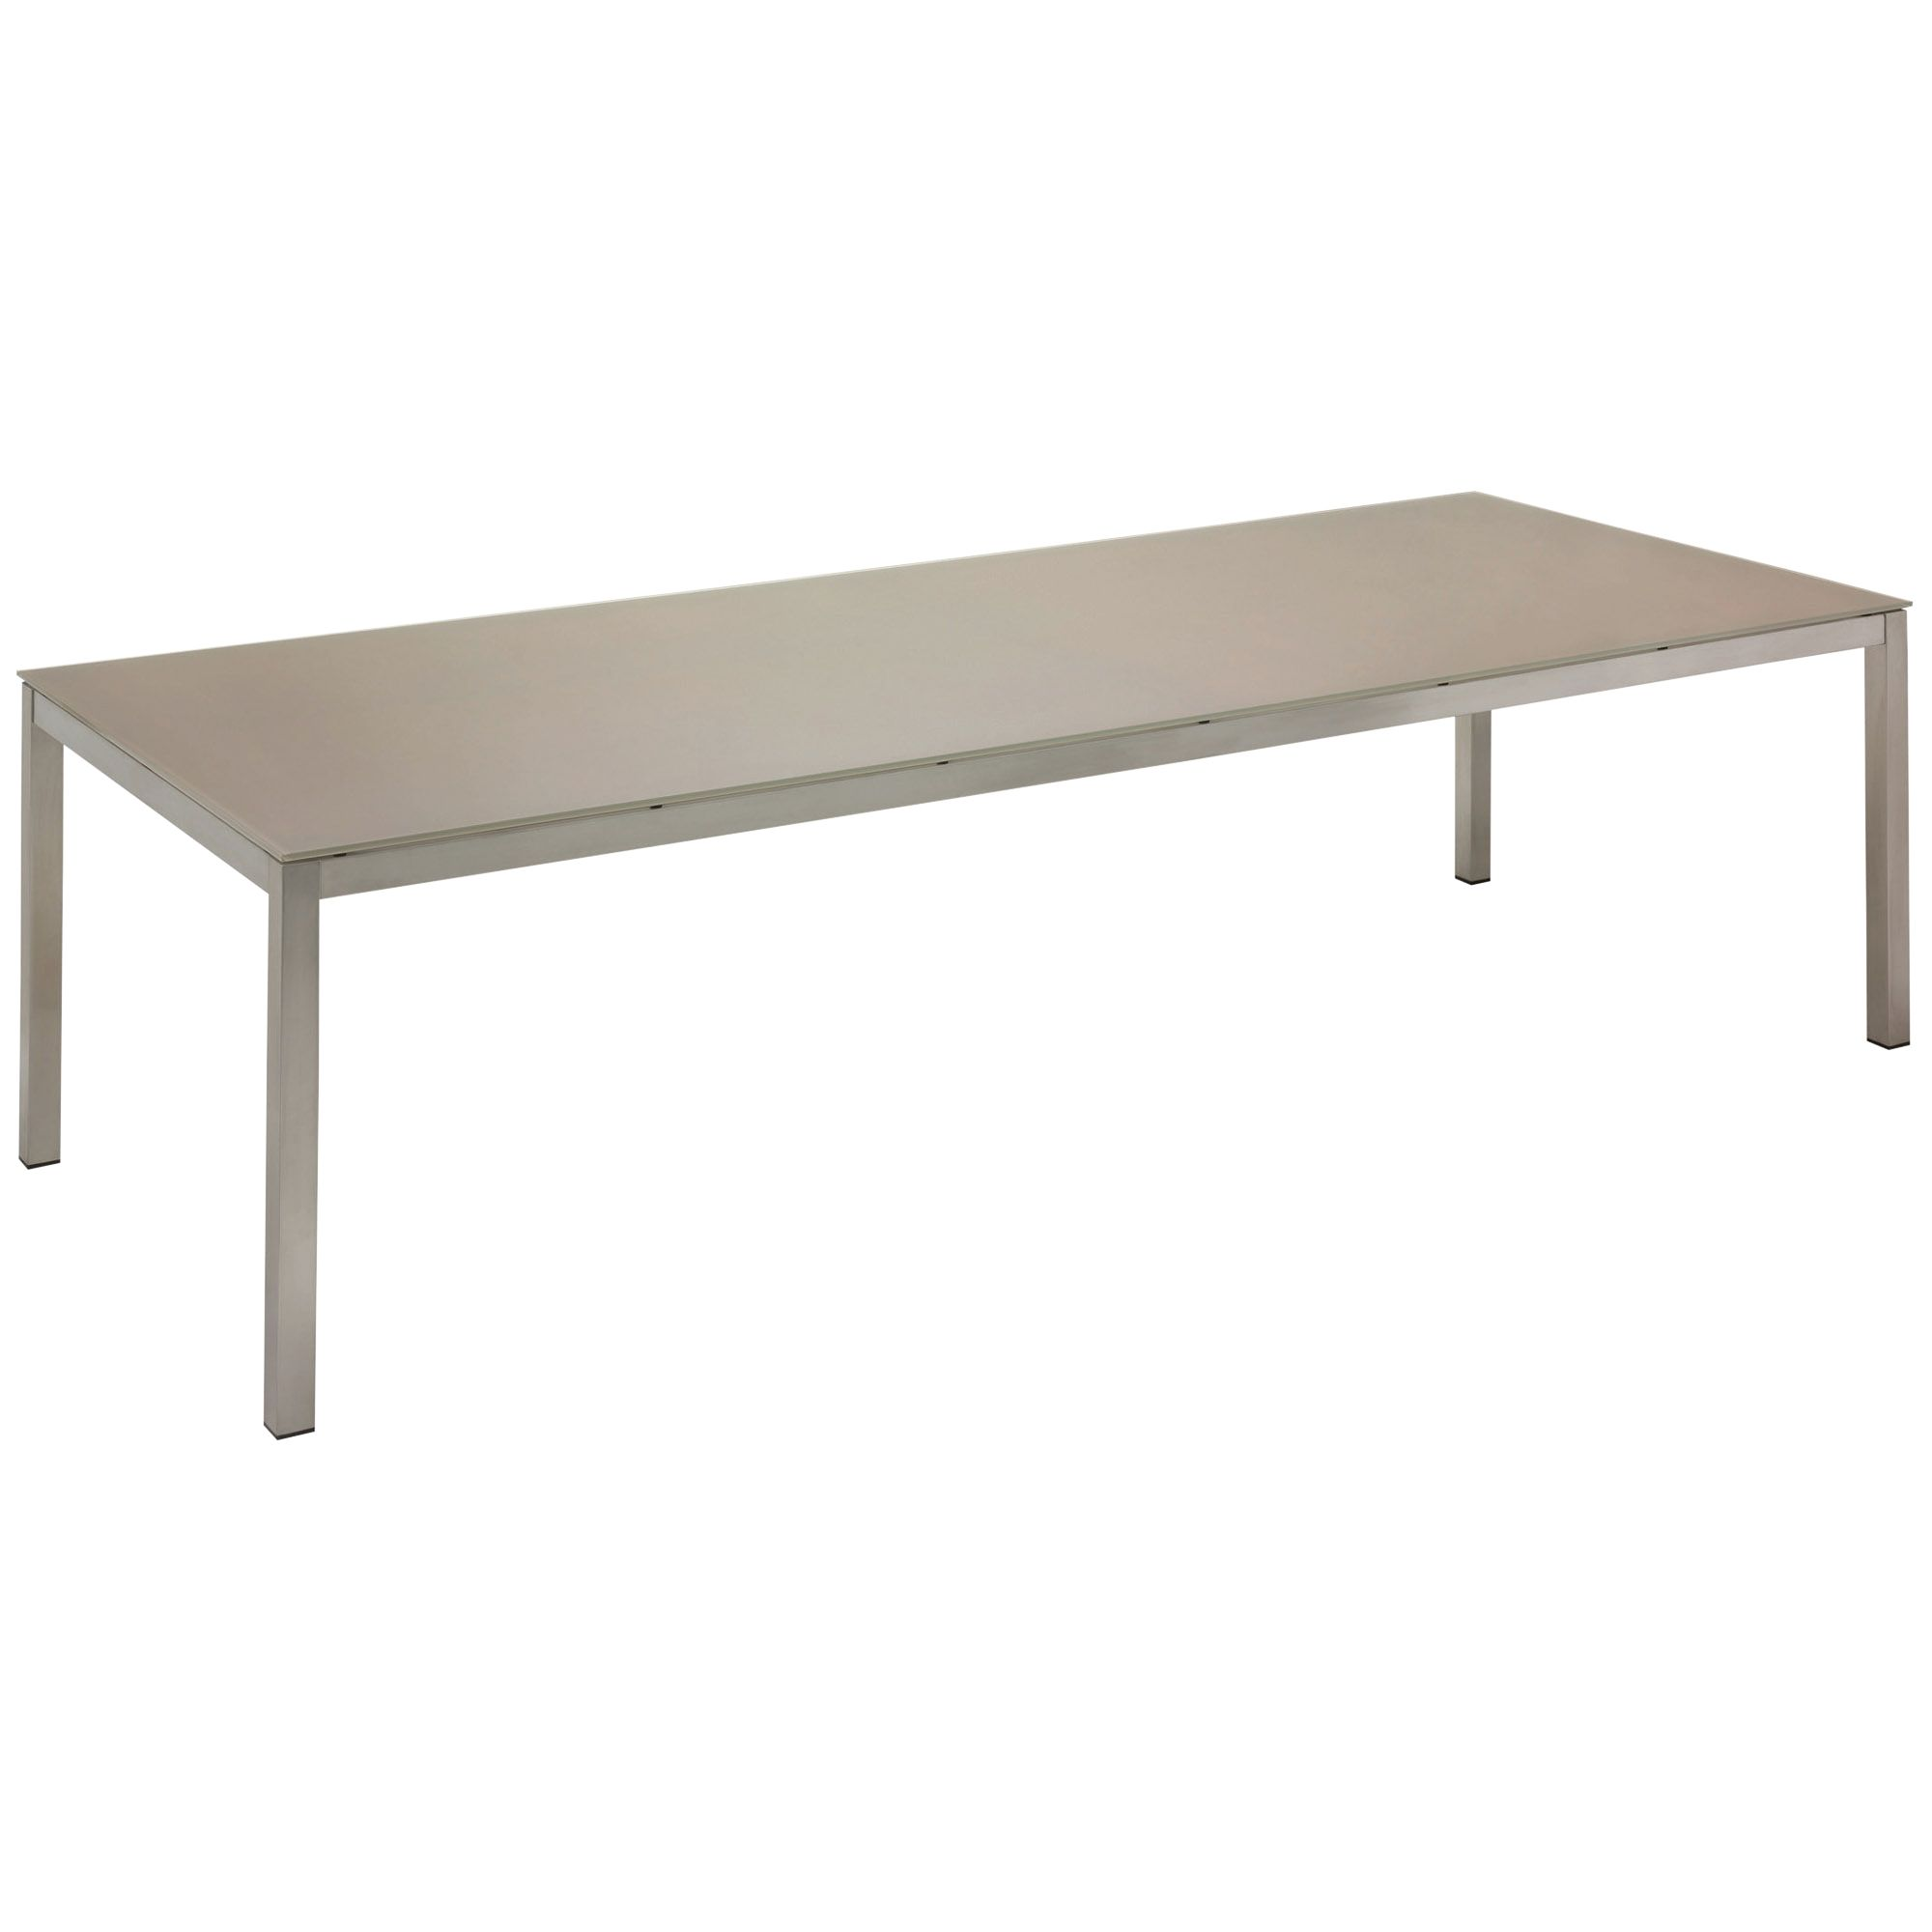 Gloster Kore Rectangular 10 Seater Outdoor Dining Tables, Taupe HPL